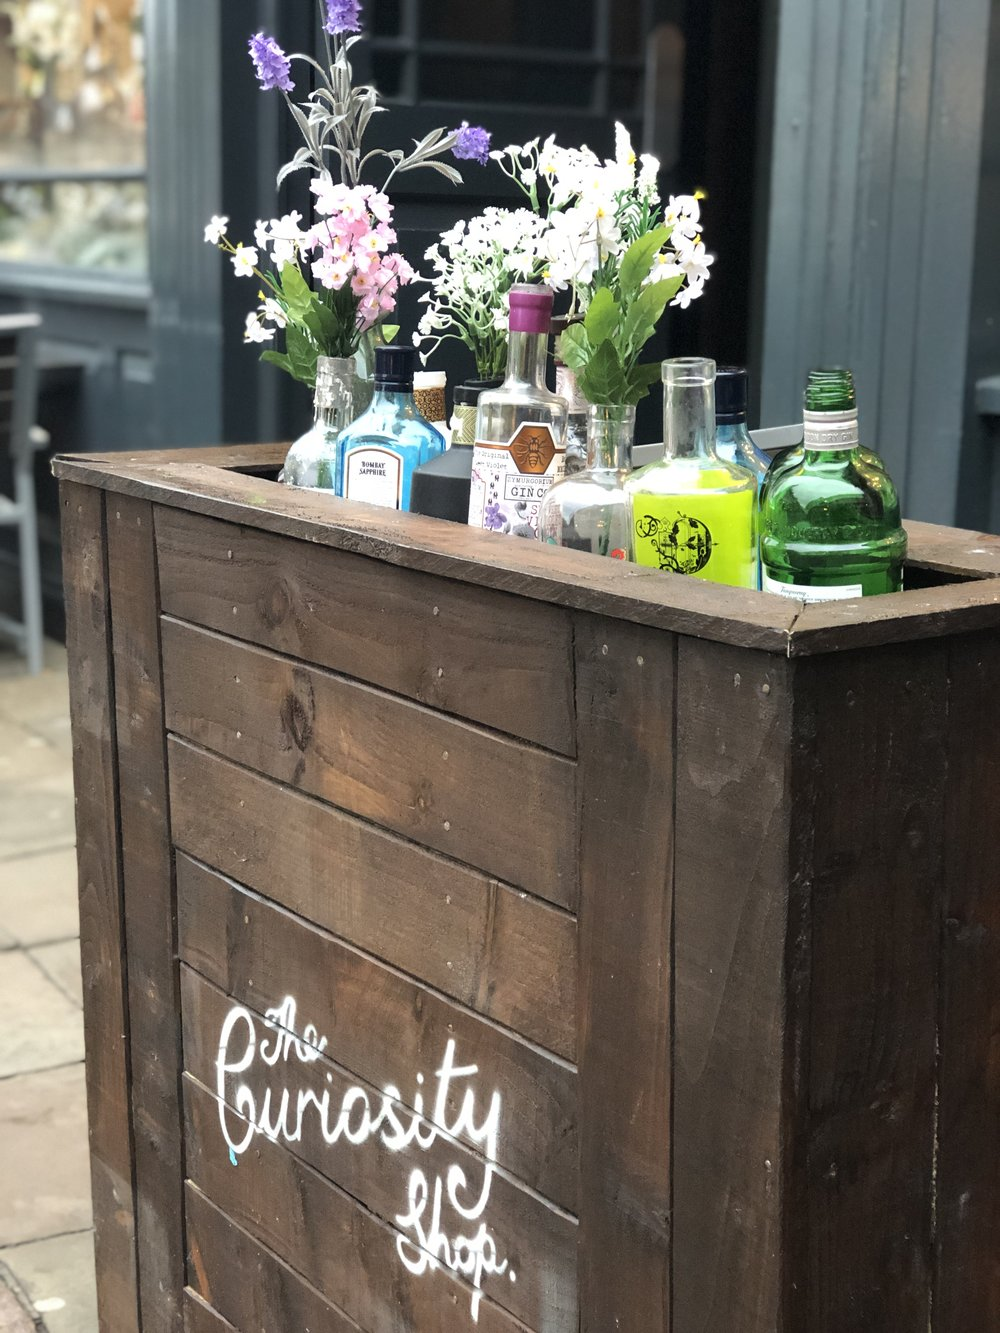 Gin bar, The Curiosity Shop, is a five minute stroll from The Lincoln House